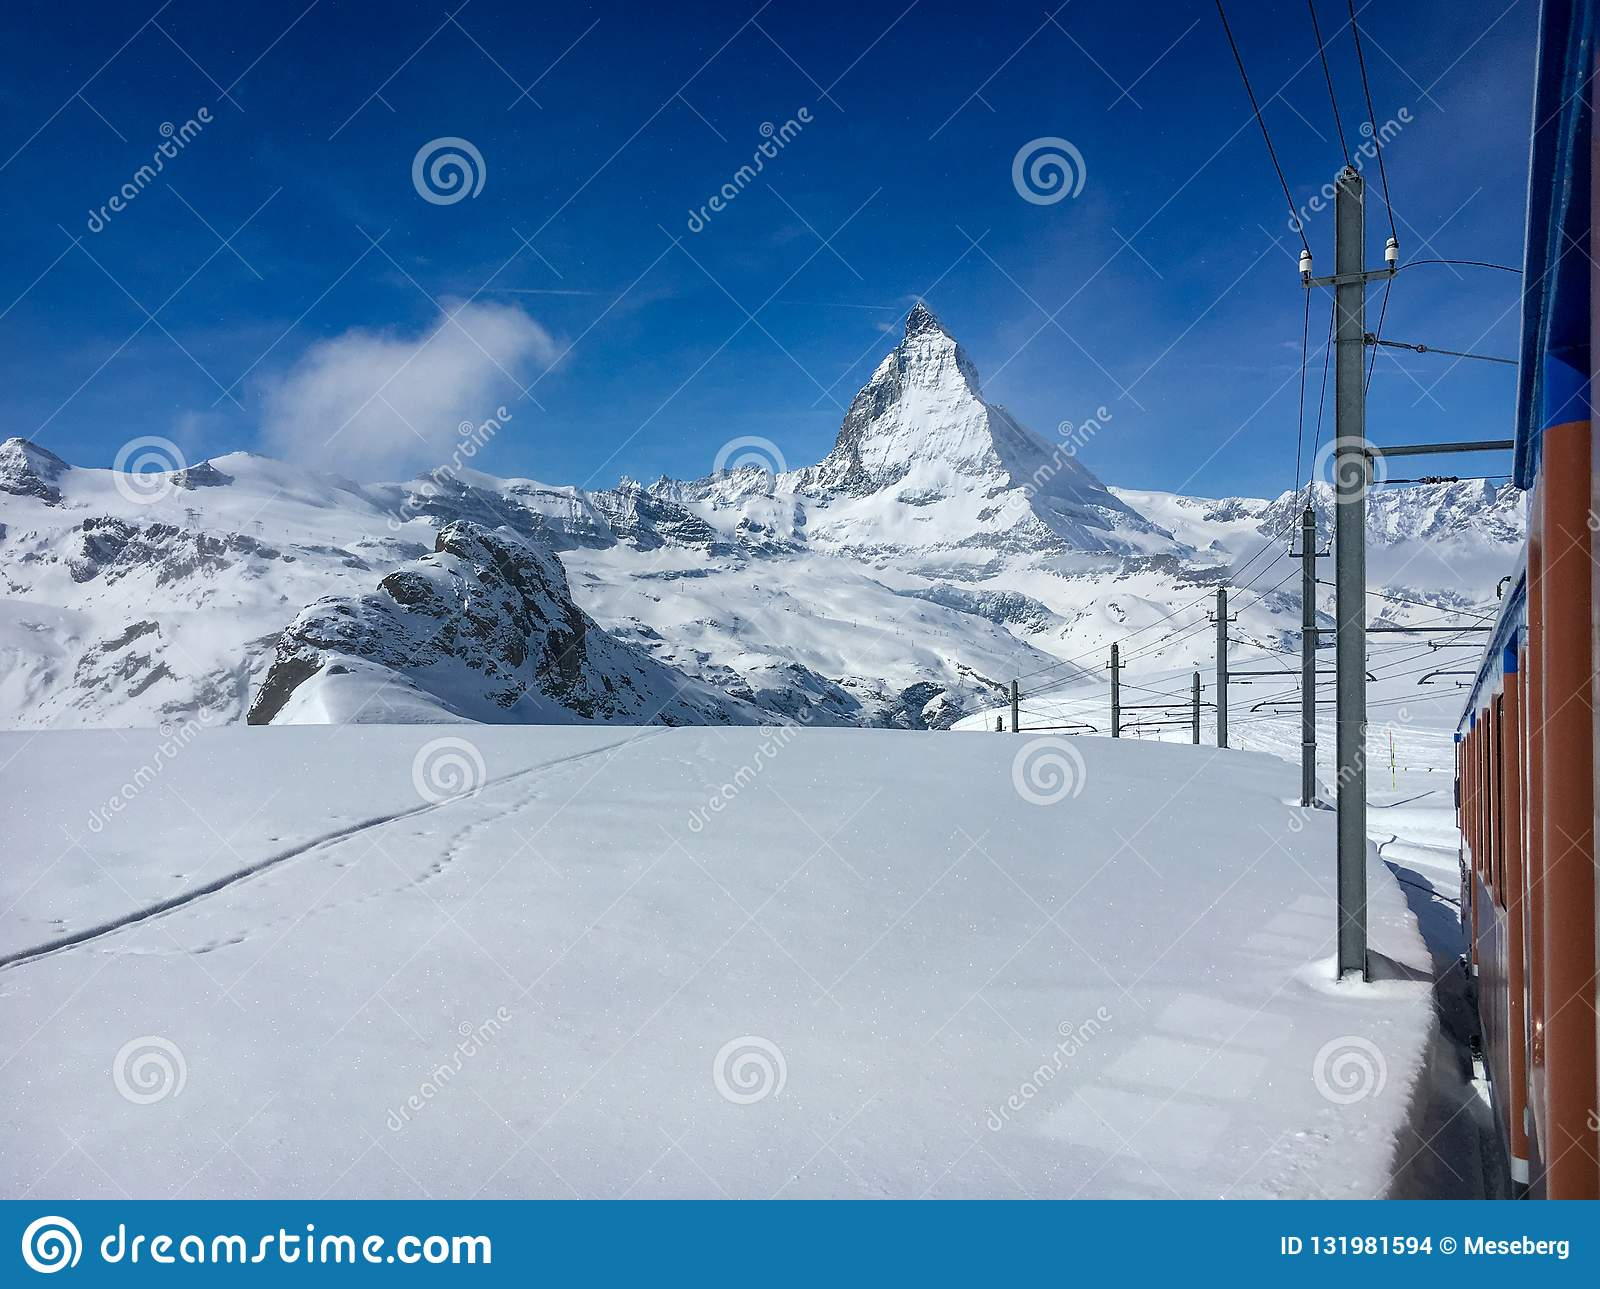 Matterhorn mountain and alpine landscape with Gornergrat railway